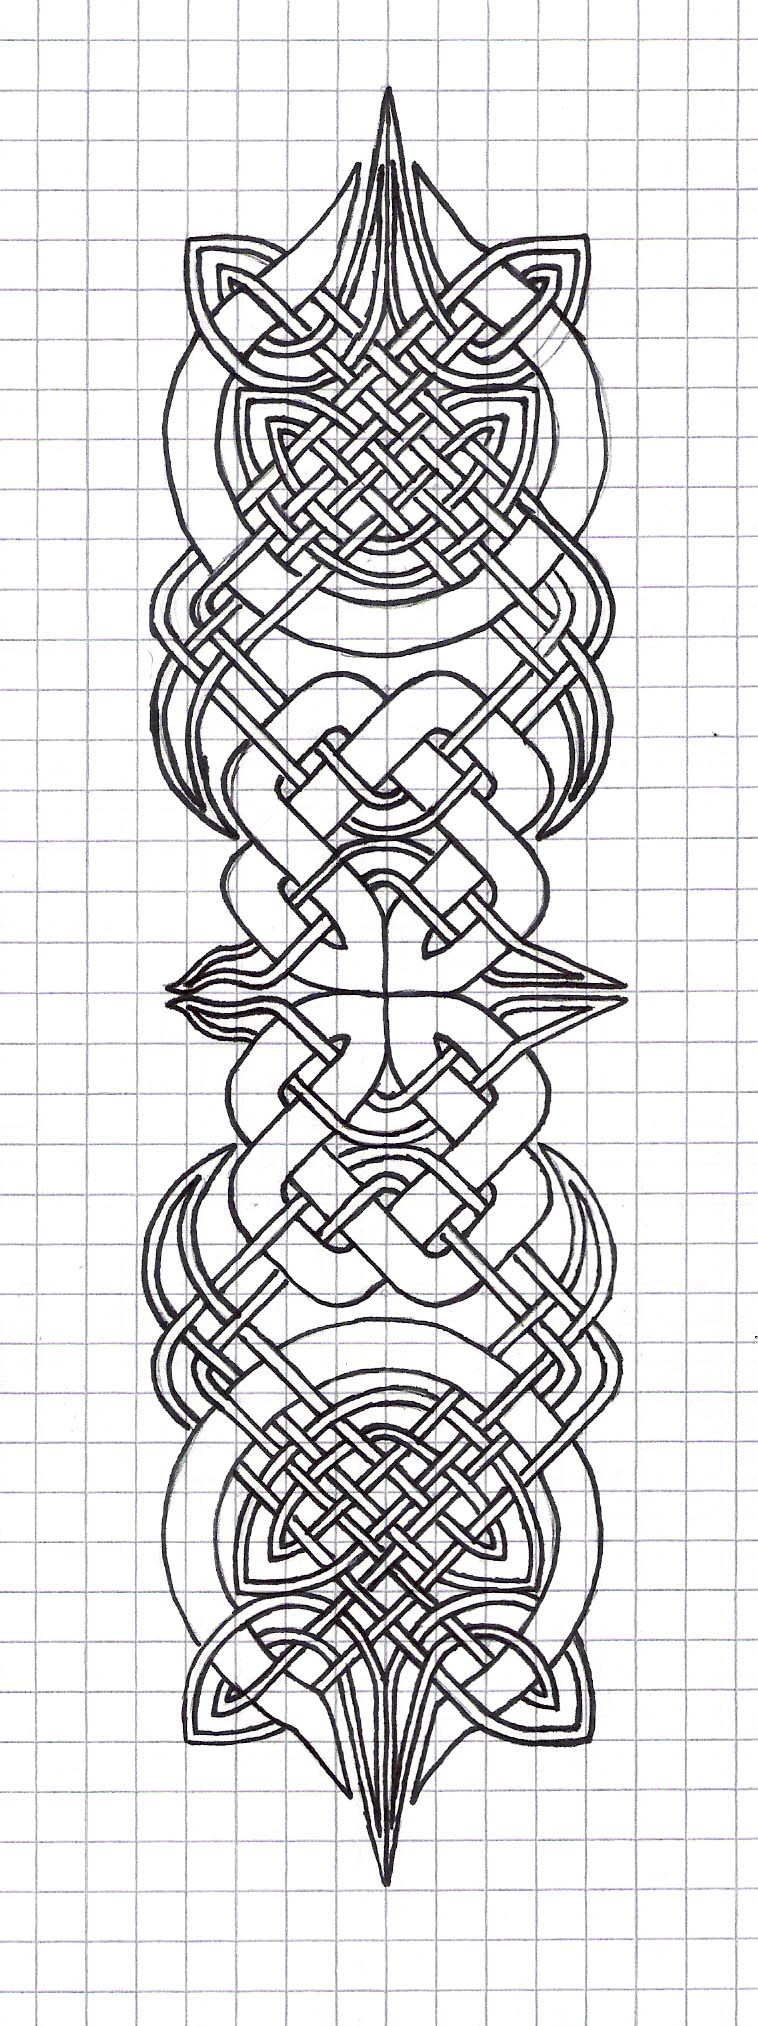 celtic designs by Crowly.deviantart.com on @deviantART